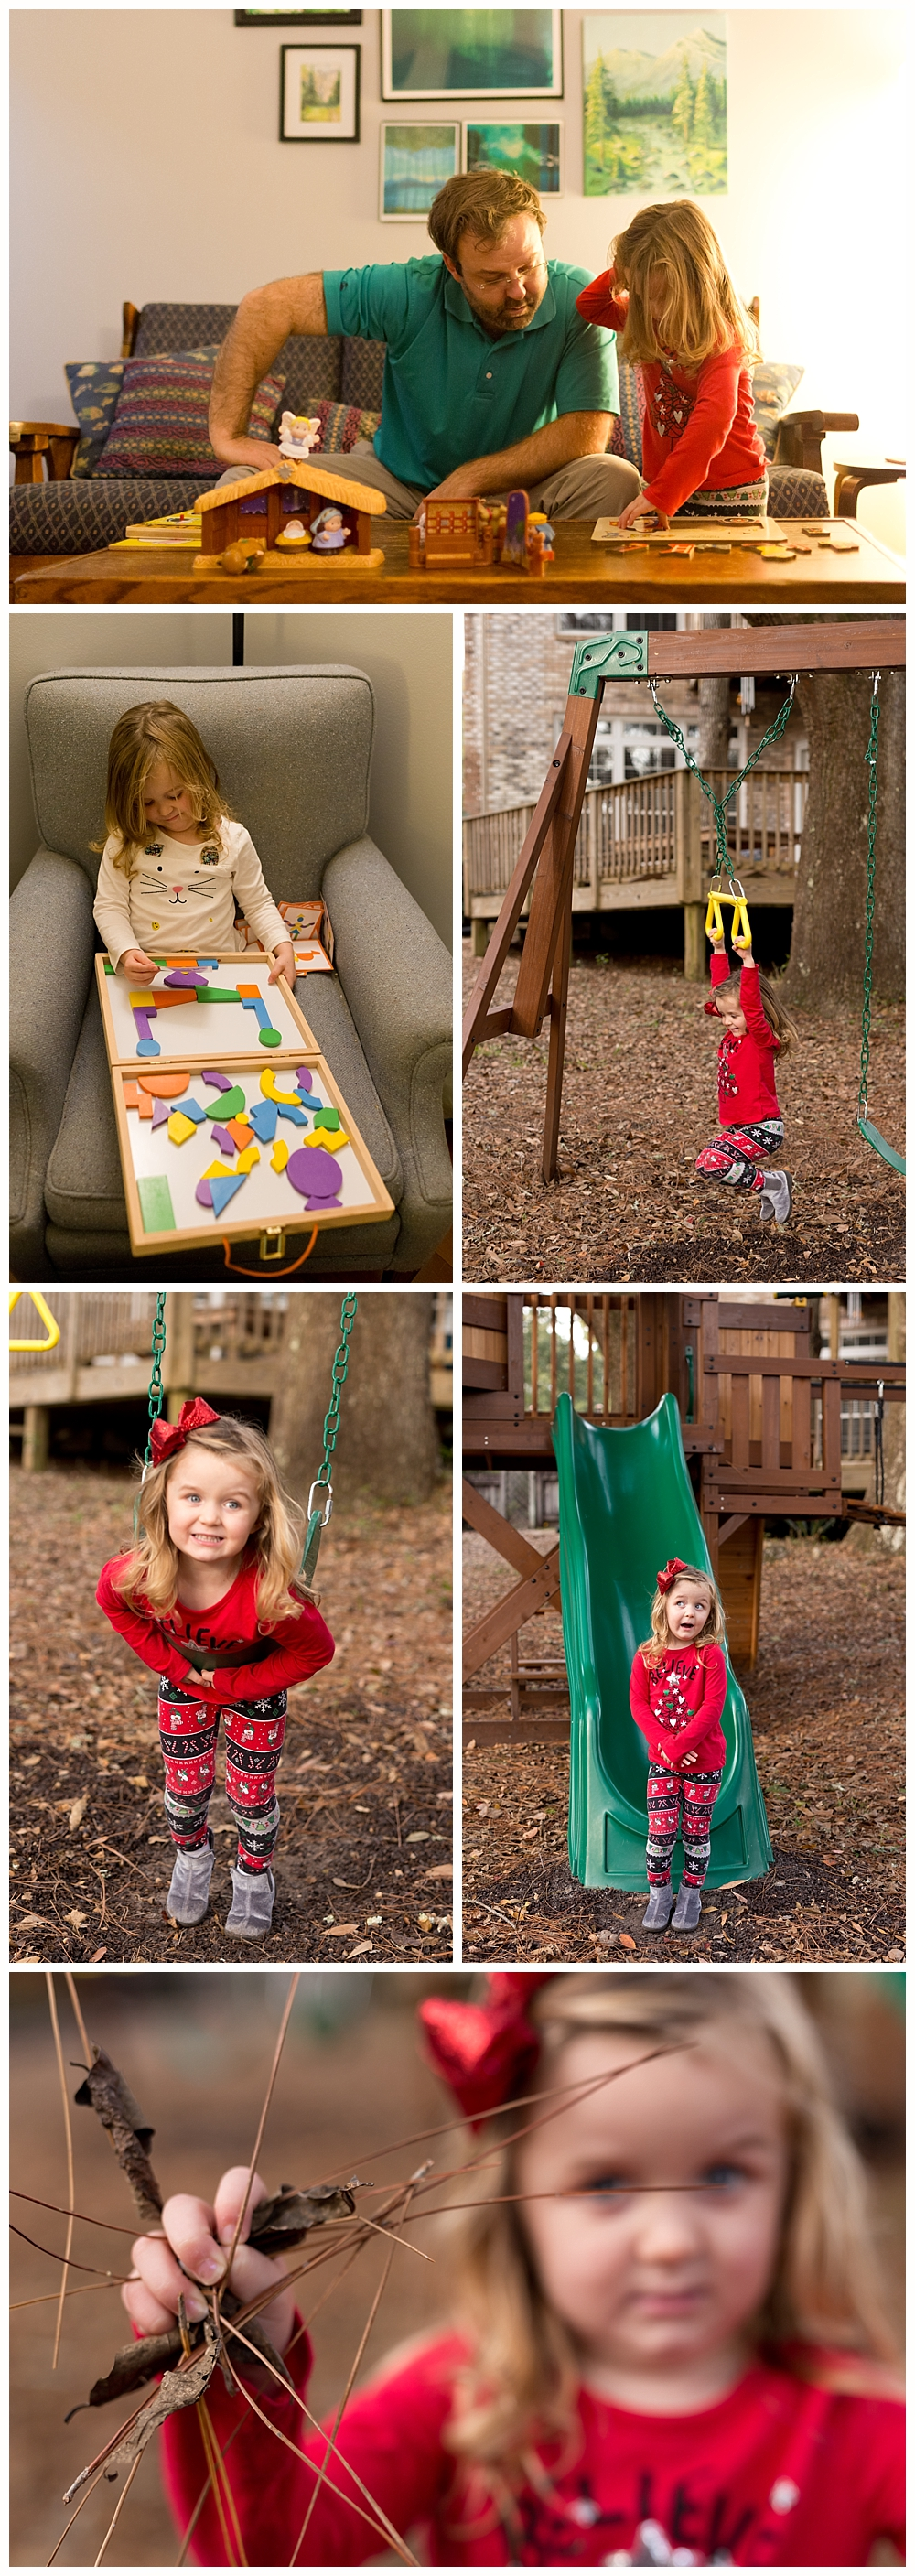 little girl playing on playset and with puzzle and magnet set